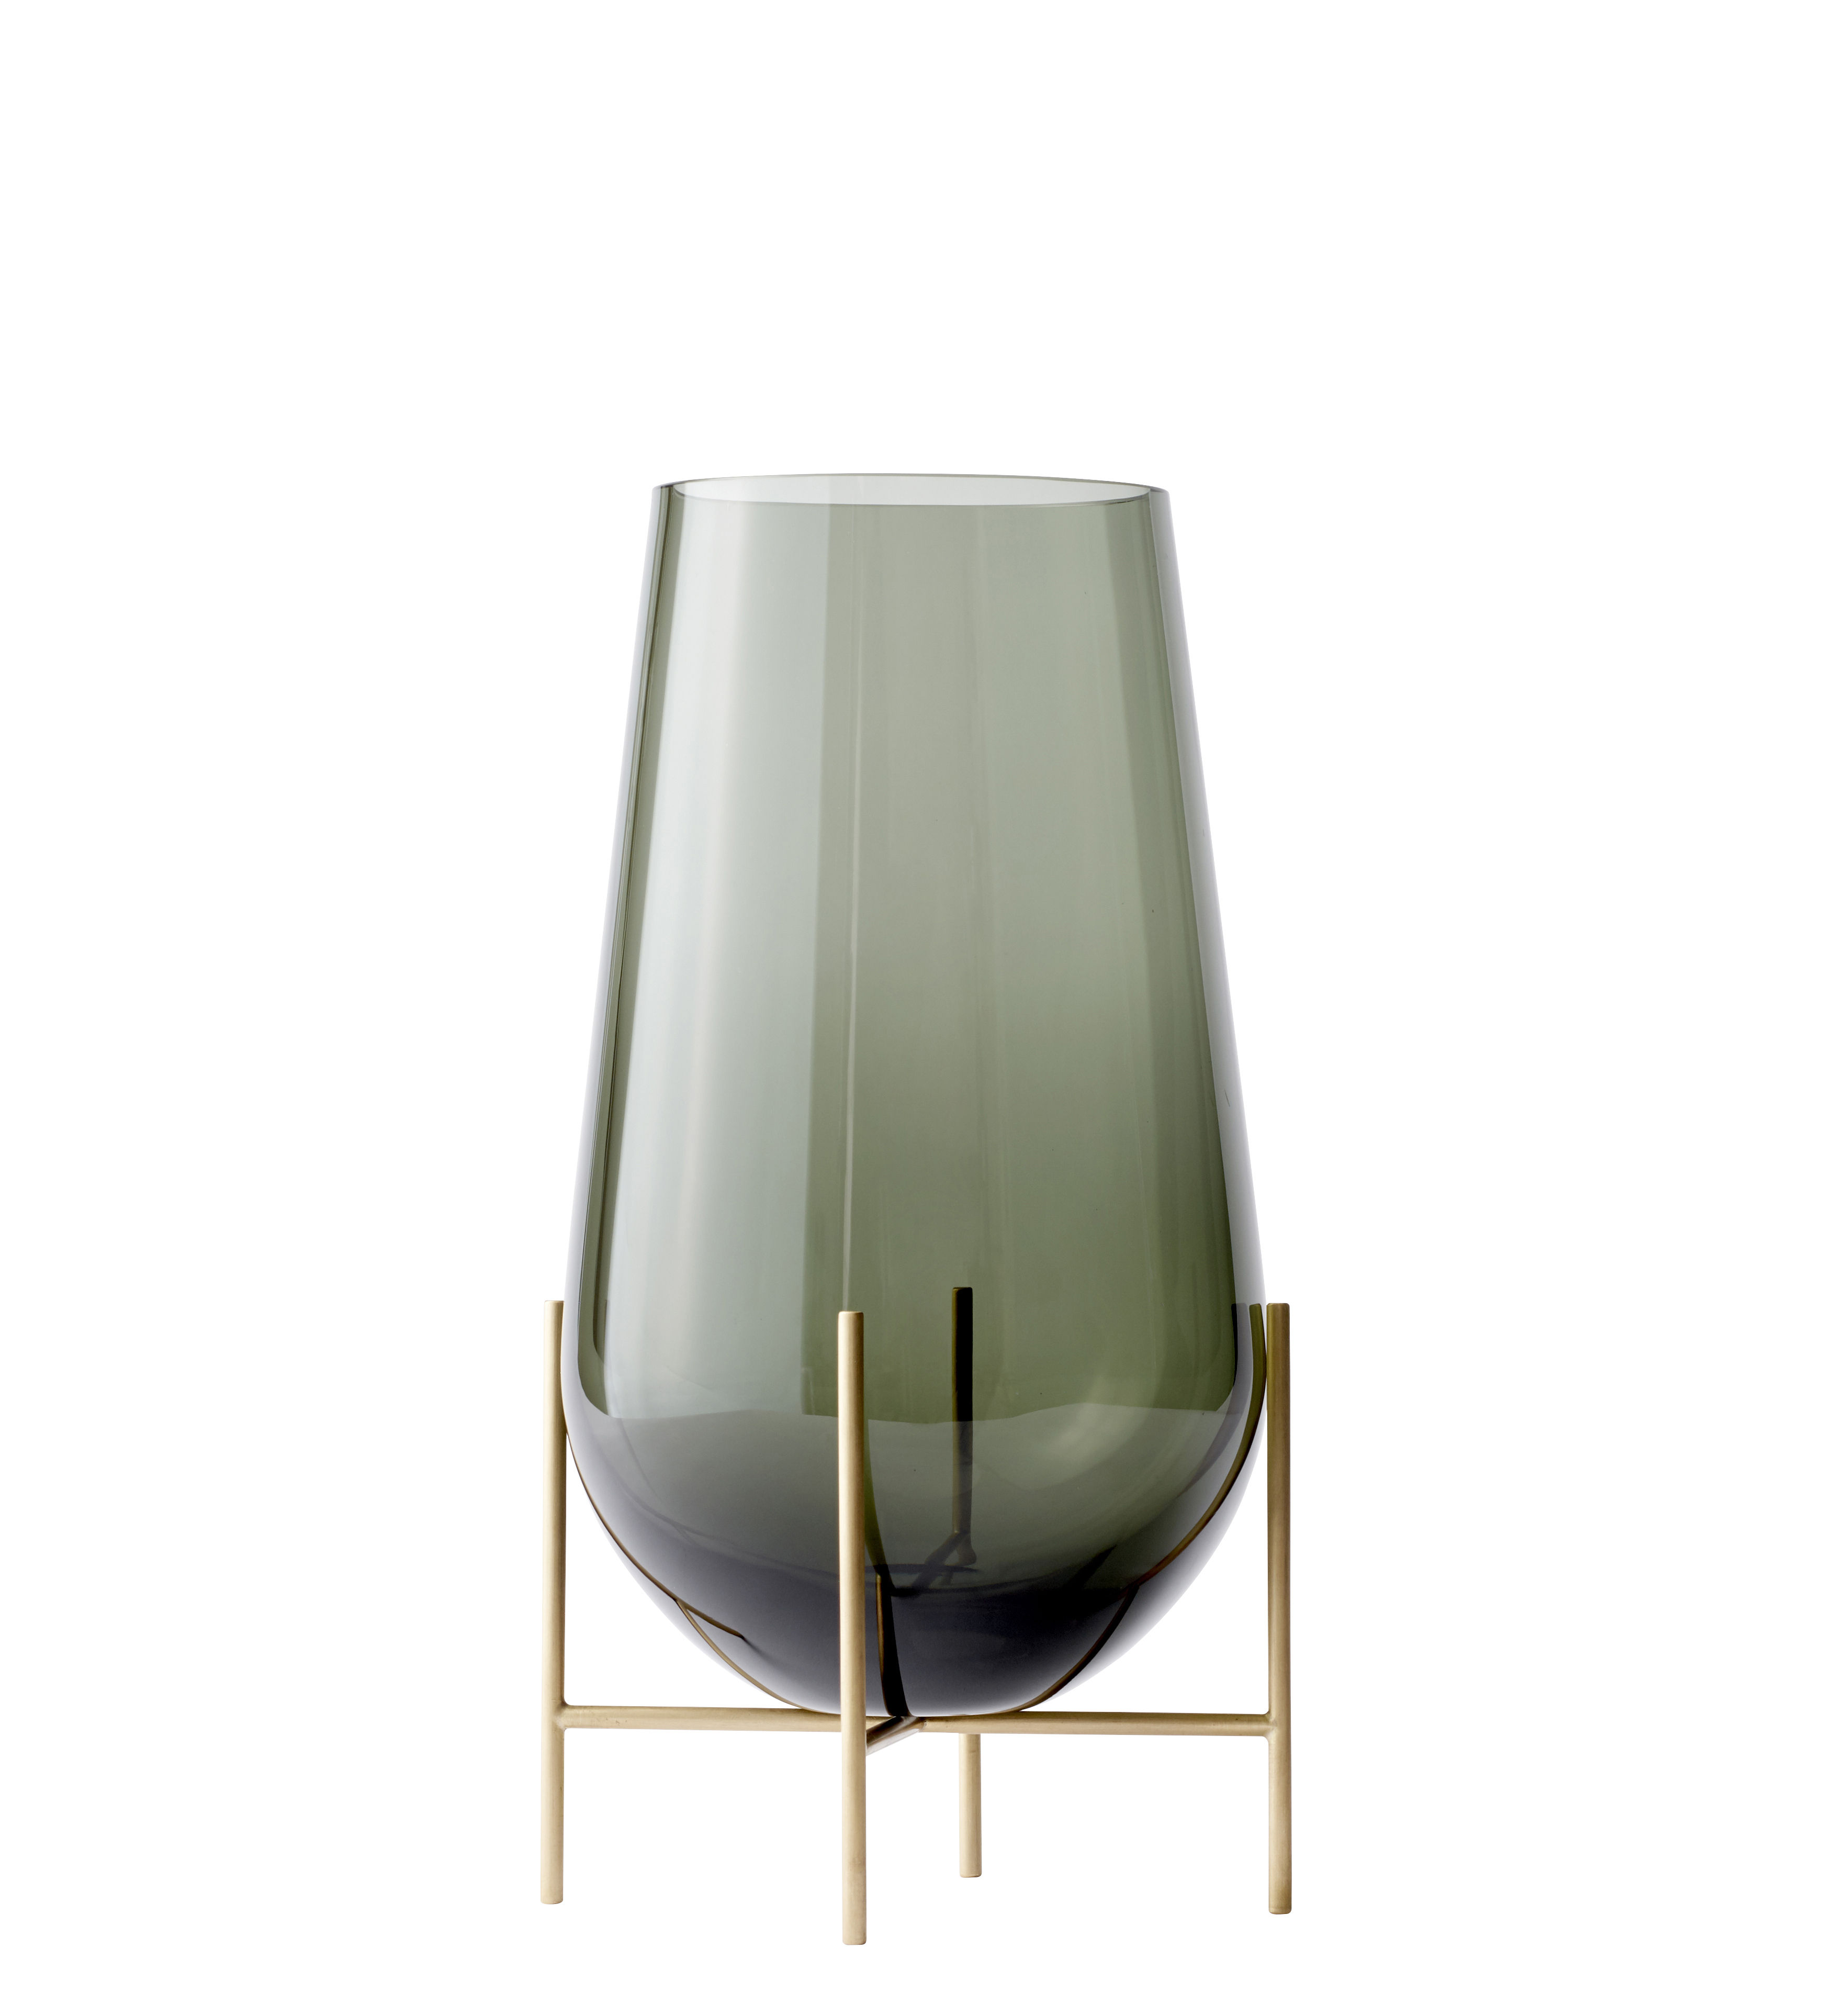 Decoration - Vases - Echasse Medium Vase - / H 45 cm by Menu - H 45 cm / Smoked glass & Brass - Glass, Solid brass